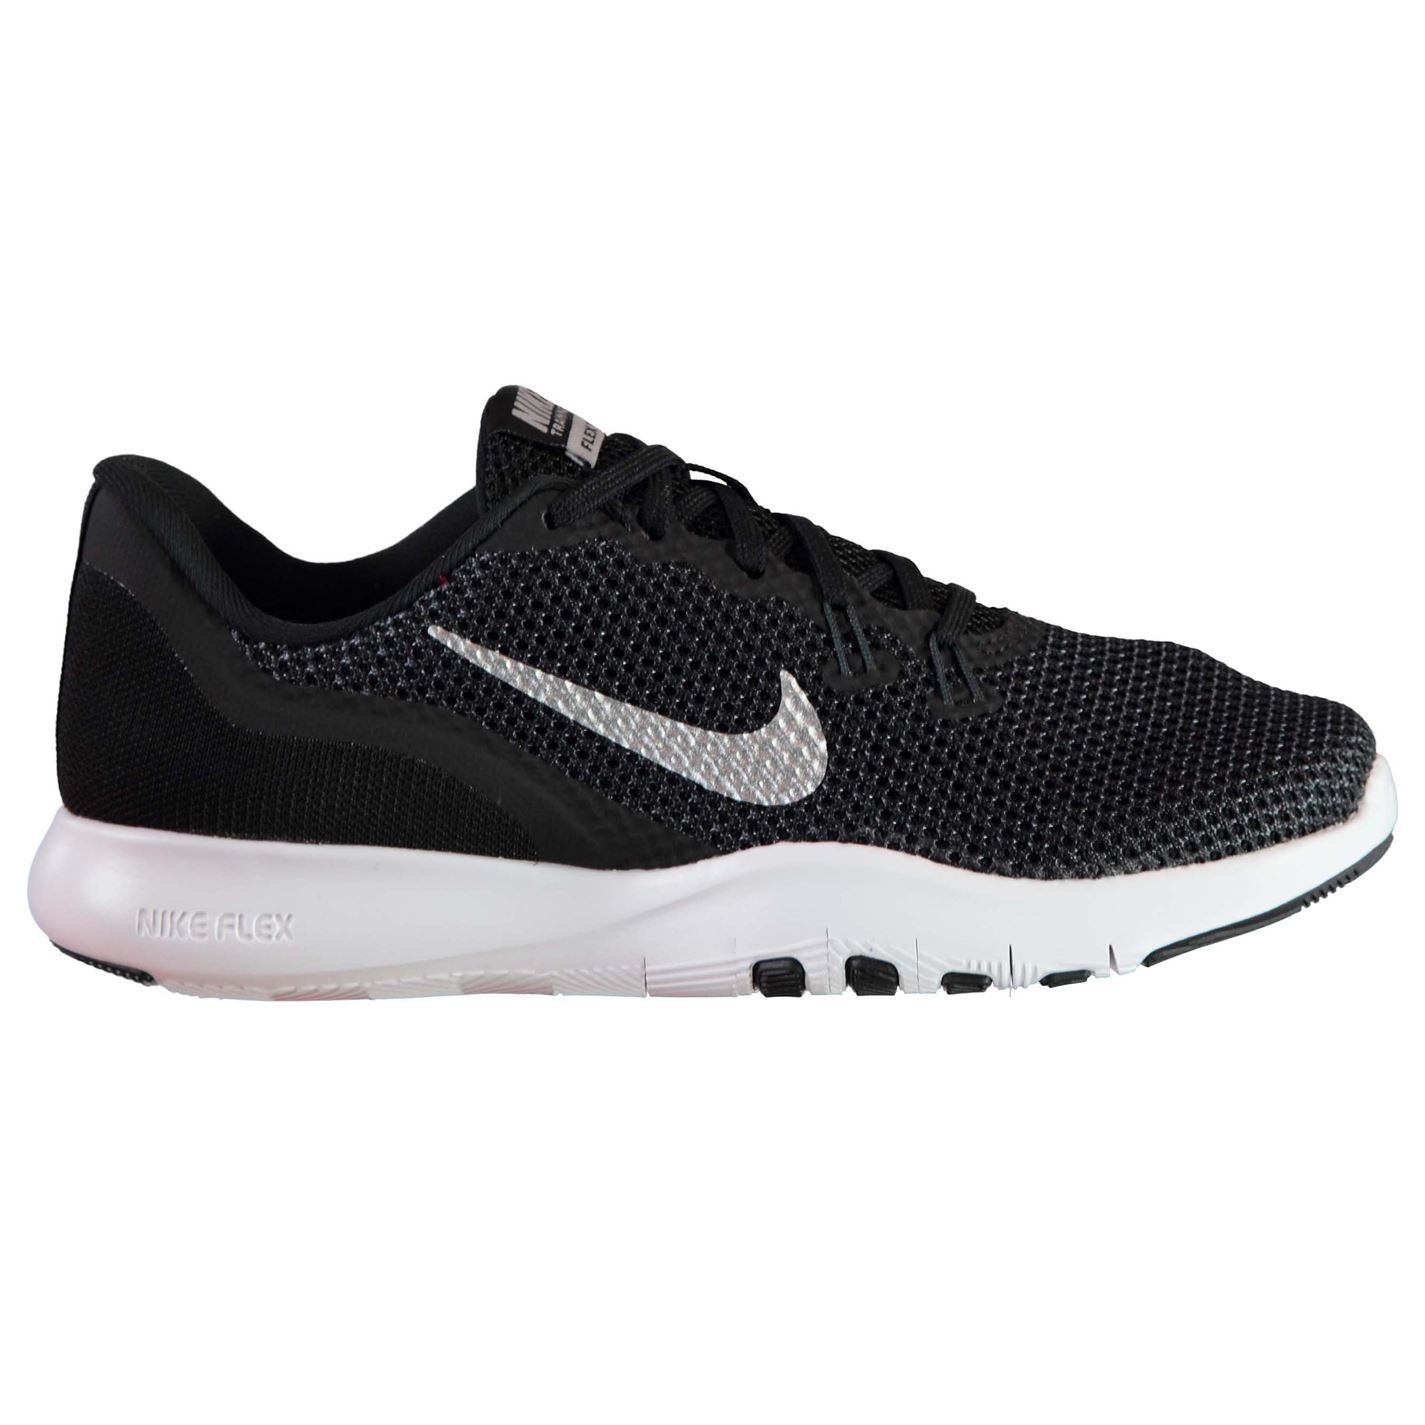 Nike Flex Trainer 7 Fitness Training Shoes Womens Black/White Trainers Sneakers